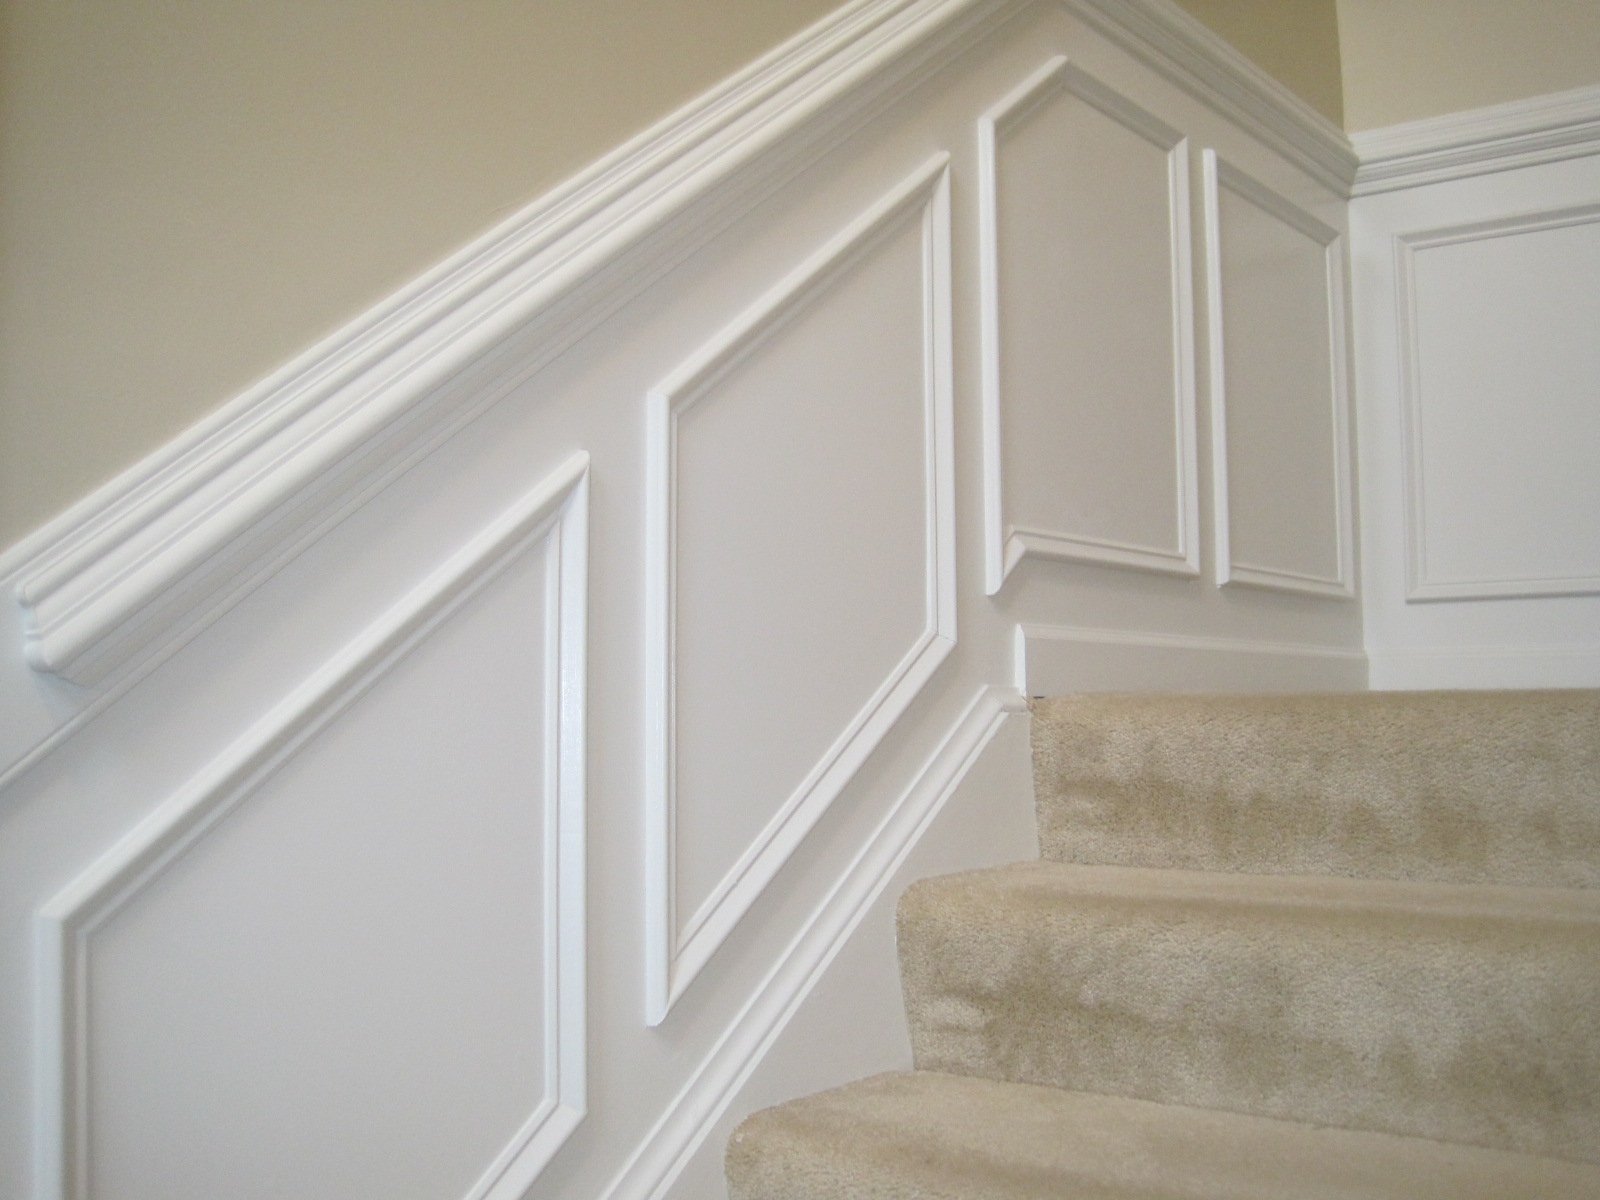 Chair Rail Examples Part - 21: Double Chair Rail Molds For Staircase In White